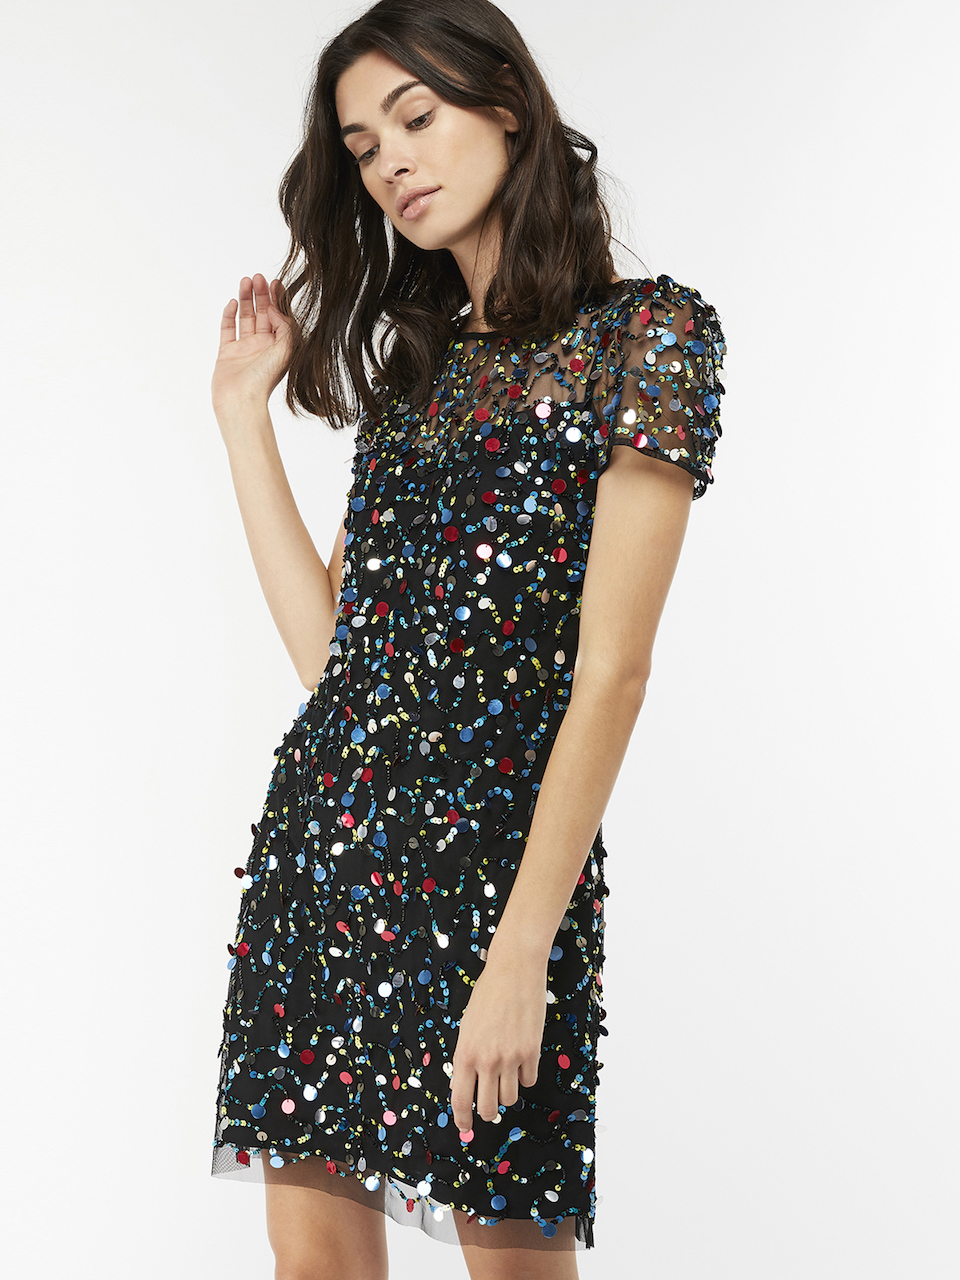 Agnes Sequin Hand Embellished Dress from Monsoon London - Sparkling Sustainable Fashion Statement Pieces on The Good Trade